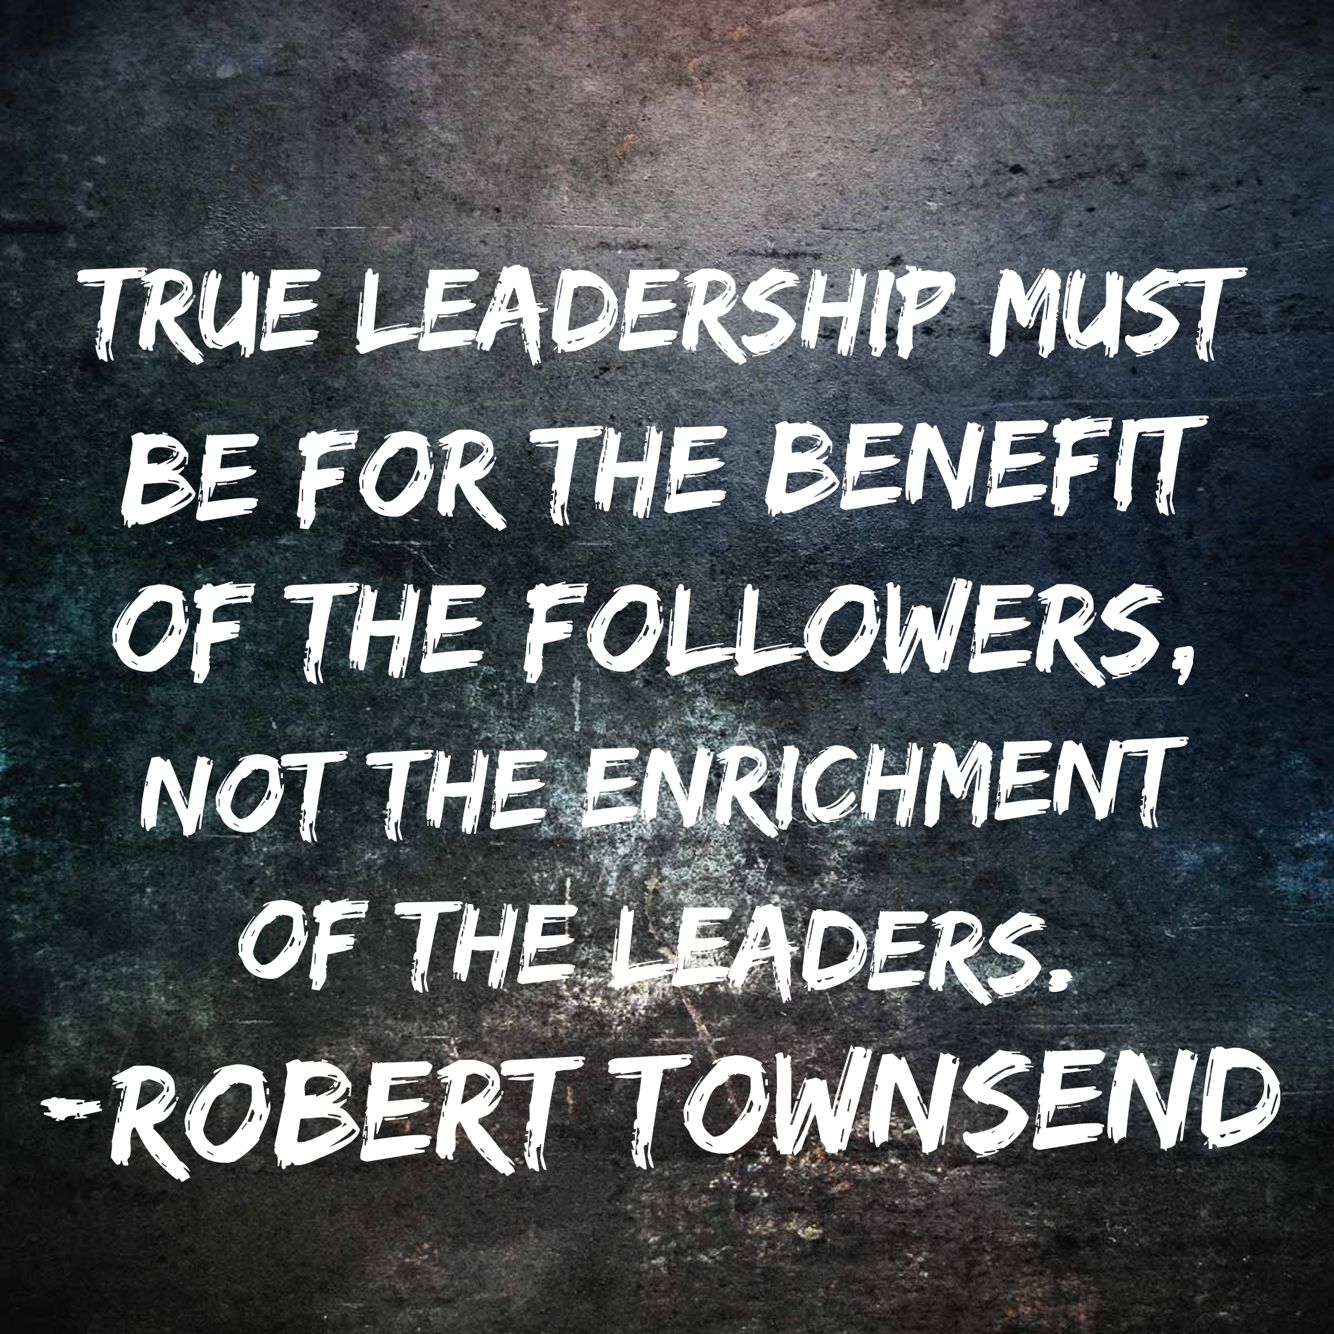 True leadership must be for the benefit of the followers, not the enrichment of the leaders. Robert Townsend #quote